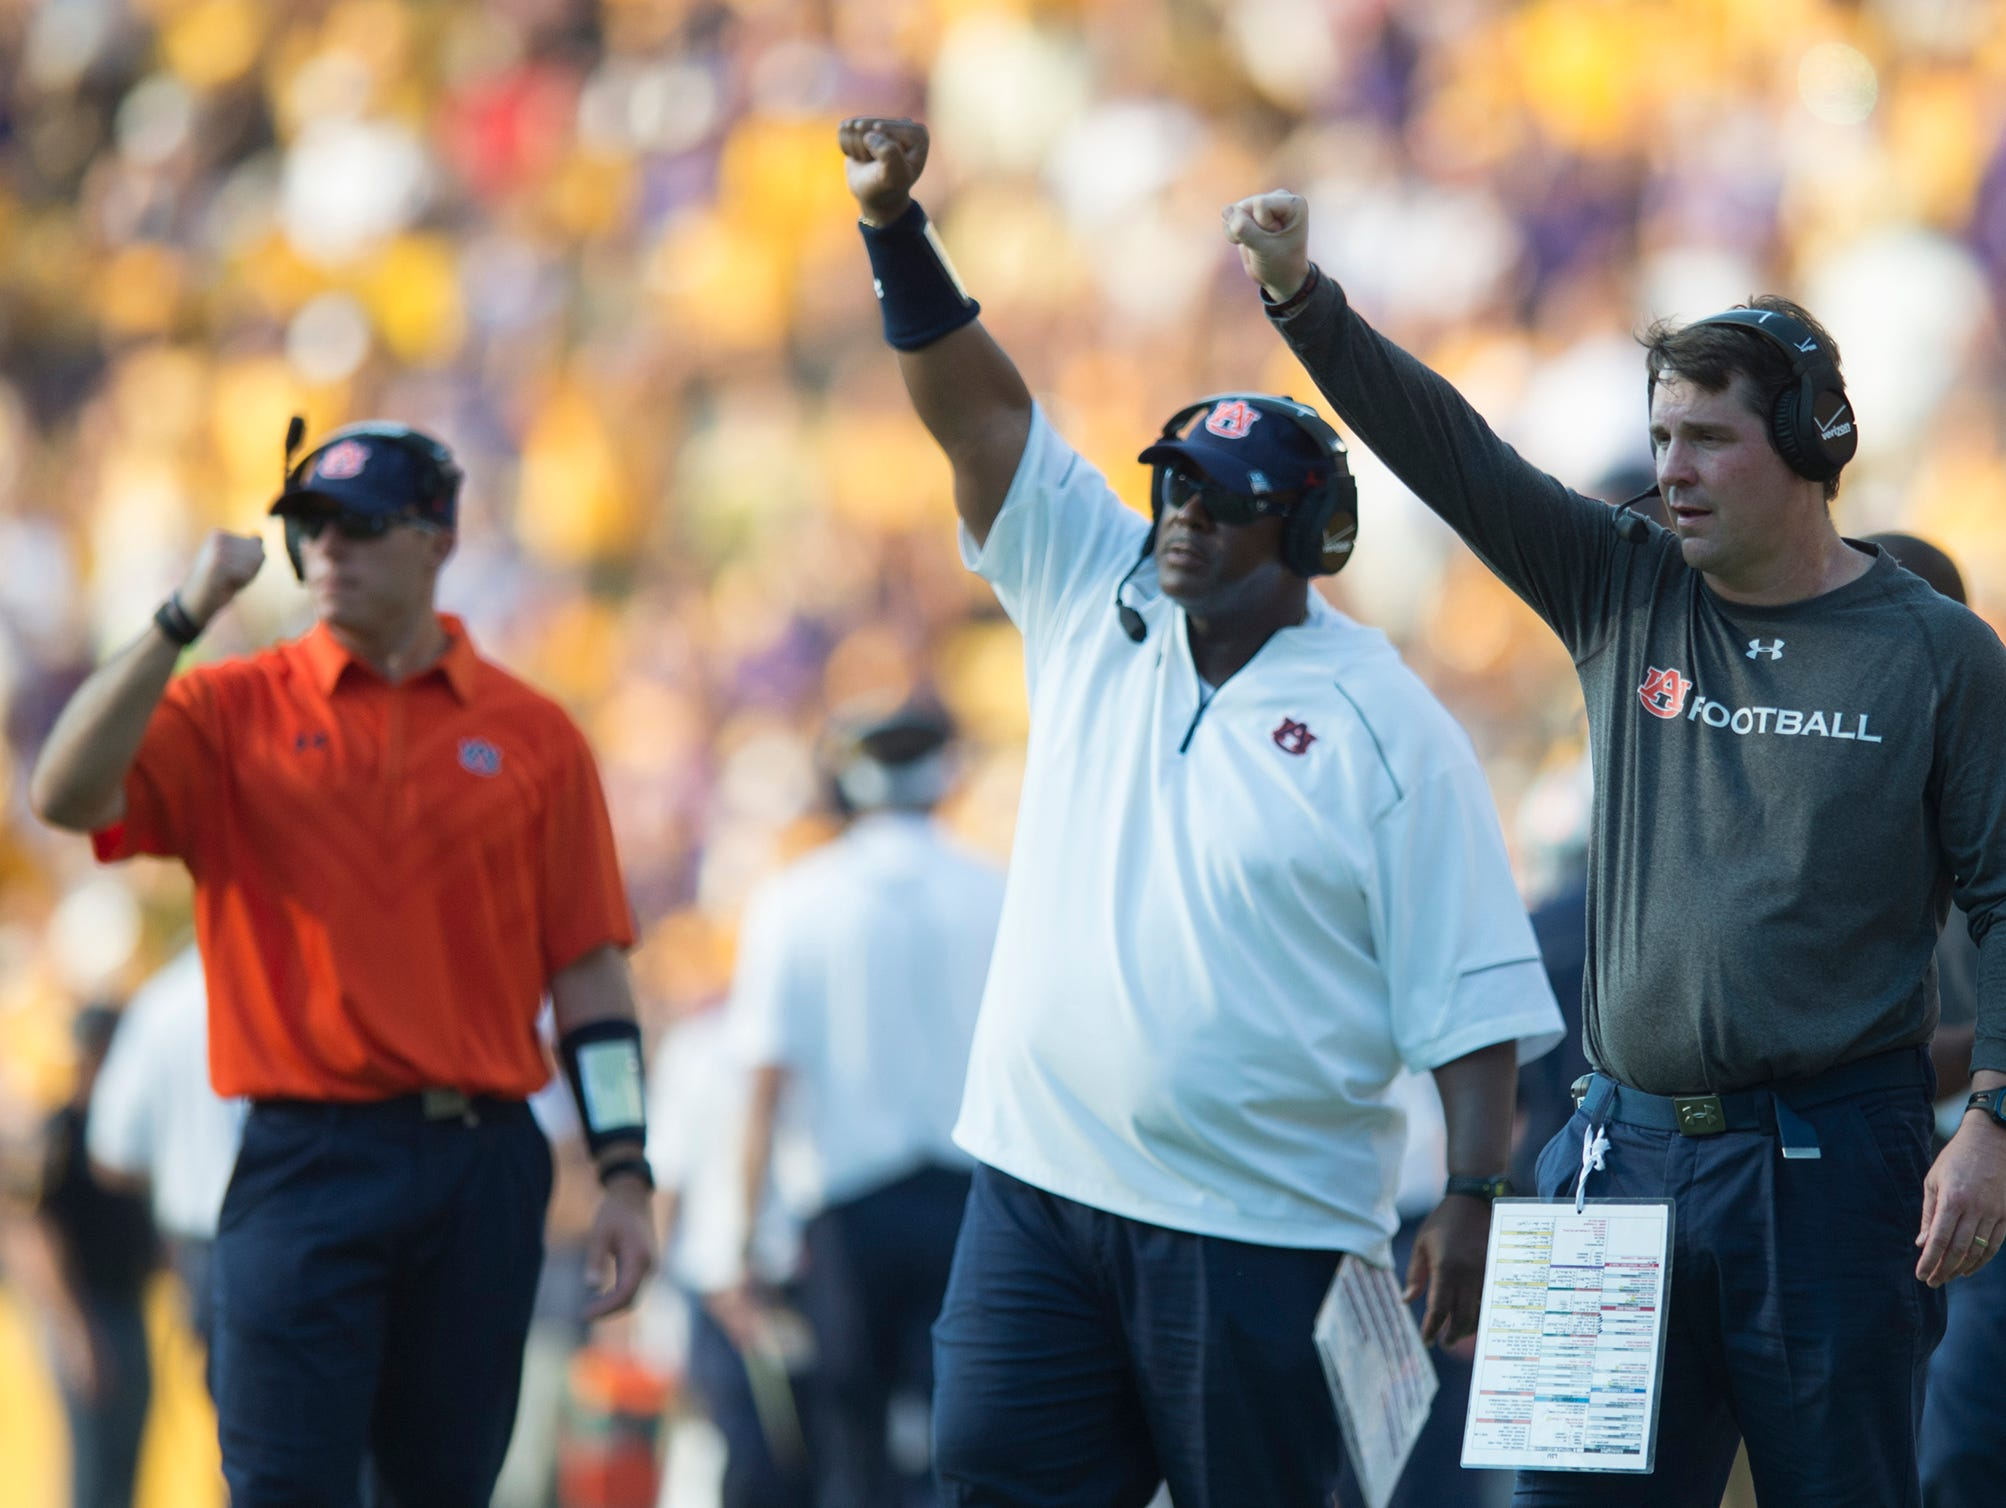 Auburn Tigers defensive coordinator Will Muschamp coaches during the NCAA football game between LSU Tigers and Auburn on Saturday, Sept. 19, 2015, at Tiger Stadium in Baton Rouge, La. LSU Tigers defeated Auburn Tigers 45-21. Albert Cesare / Advertiser